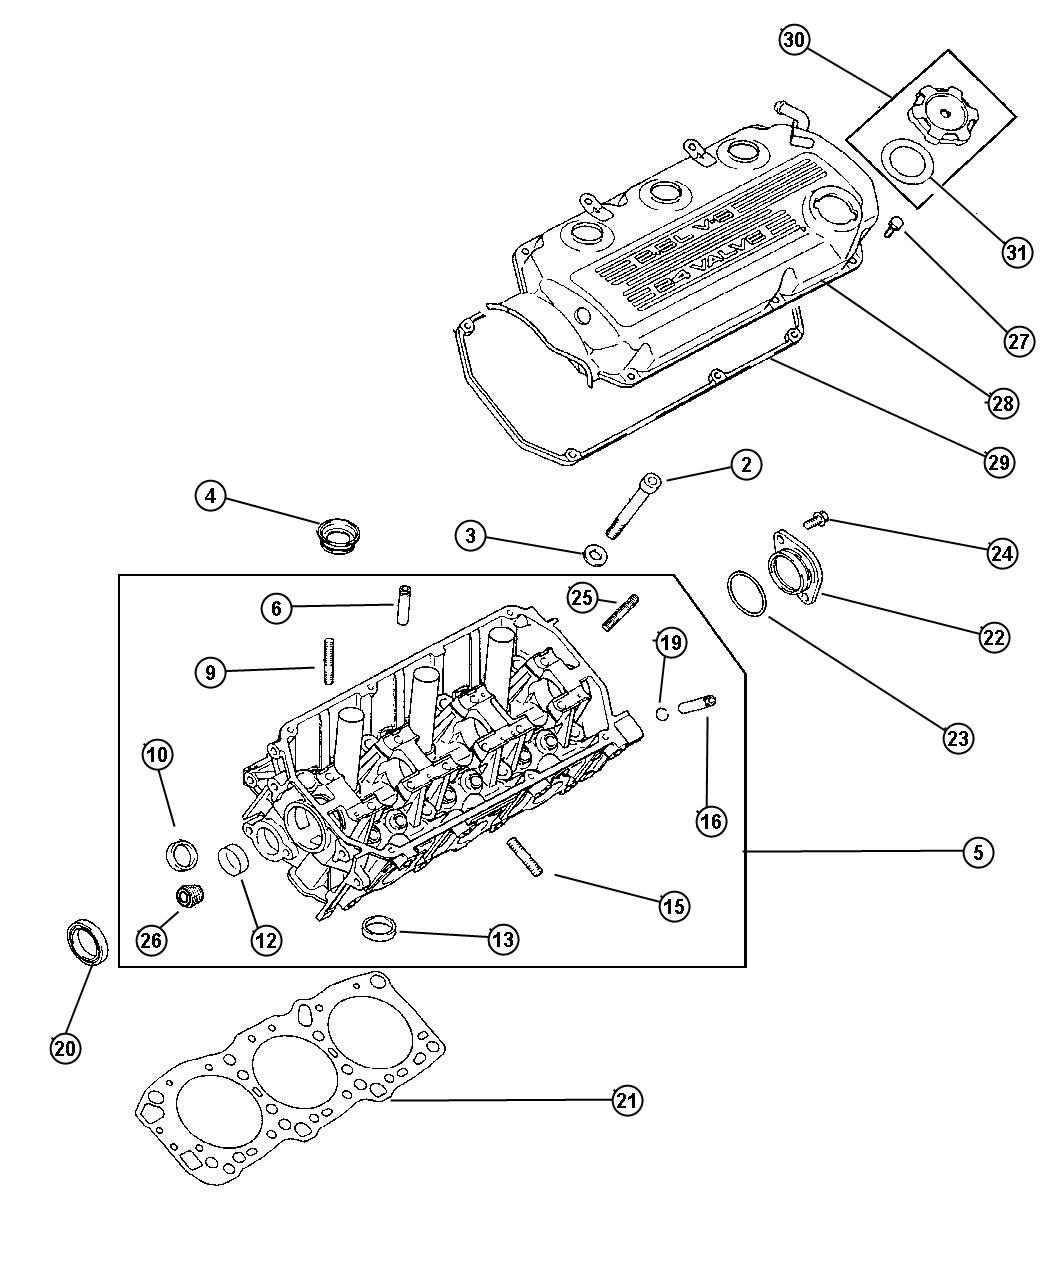 Chrysler Sebring Plug Expansion 32 Cylinder Head